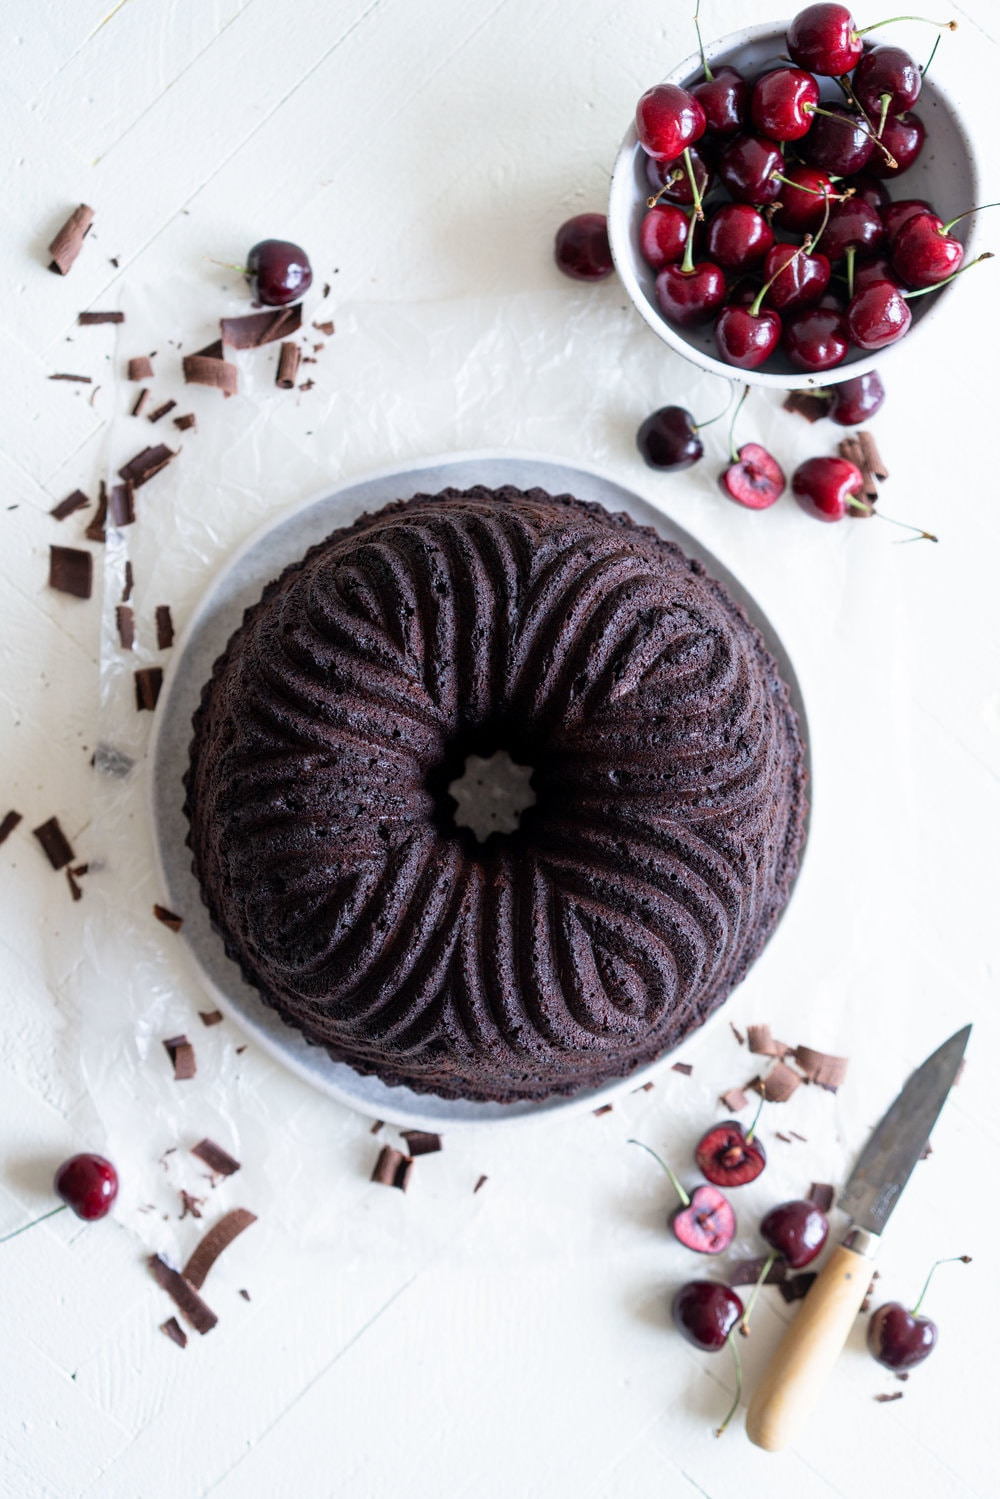 Black forest bundt cake - a rich, tender, chocolate cherry bundt cake that is studded with cherries is topped with fresh softly whipped cream, fresh cherries, and chocolate curls #blackforest #chocolatecherrybundt #chocolatebundtcake